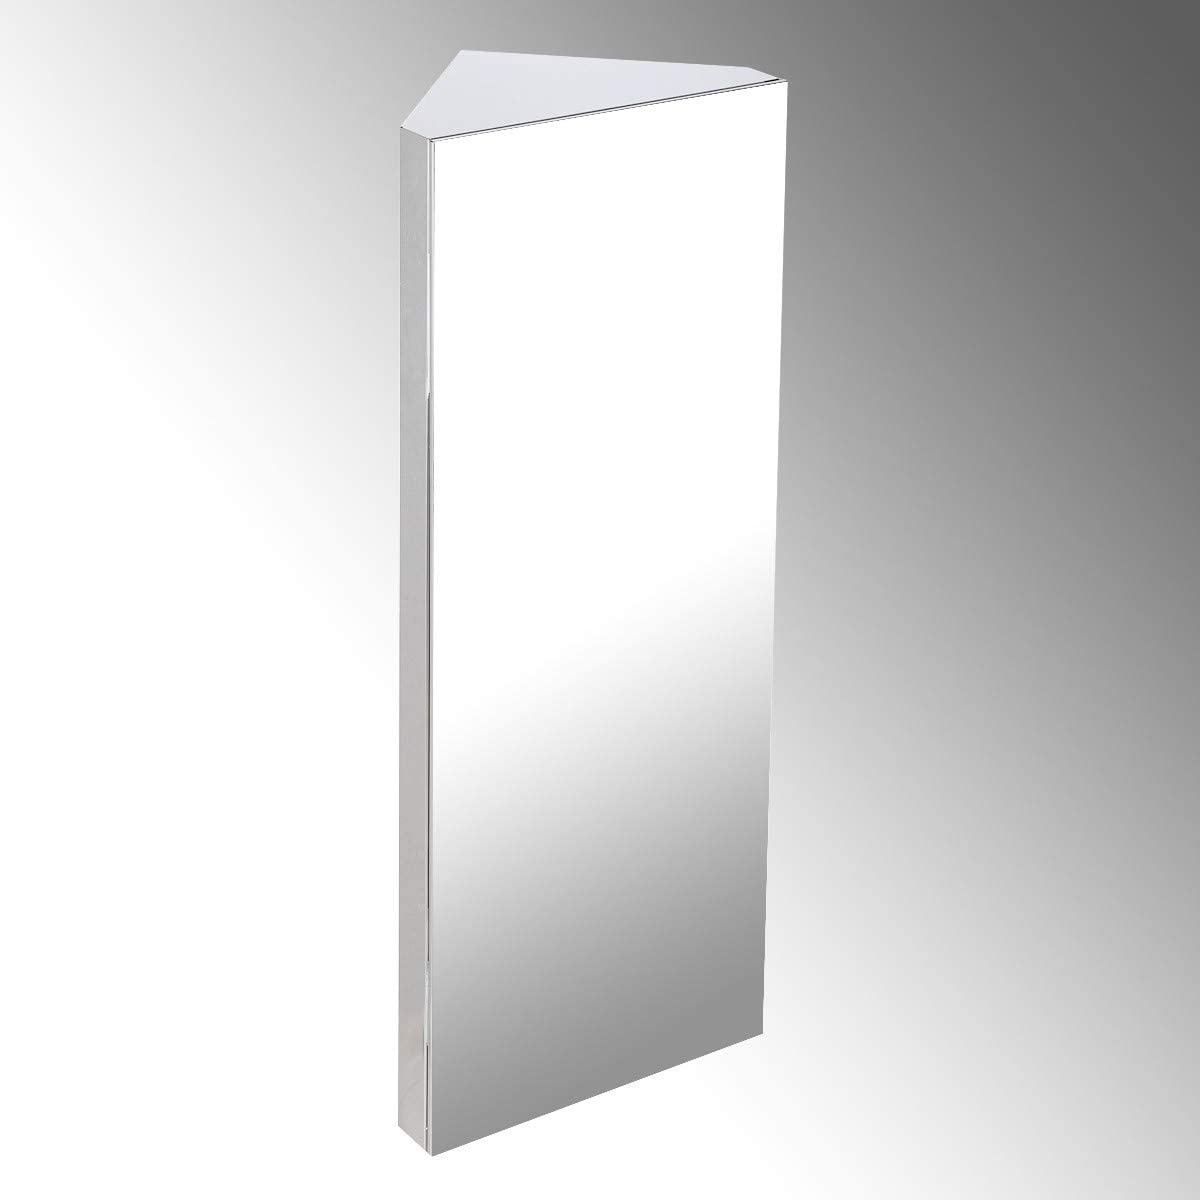 Renovators Supply Manufacturing Large Wall Mount Corner Medicine Cabinet Brushed Stainless Steel 31 1 2 Height 12 Width